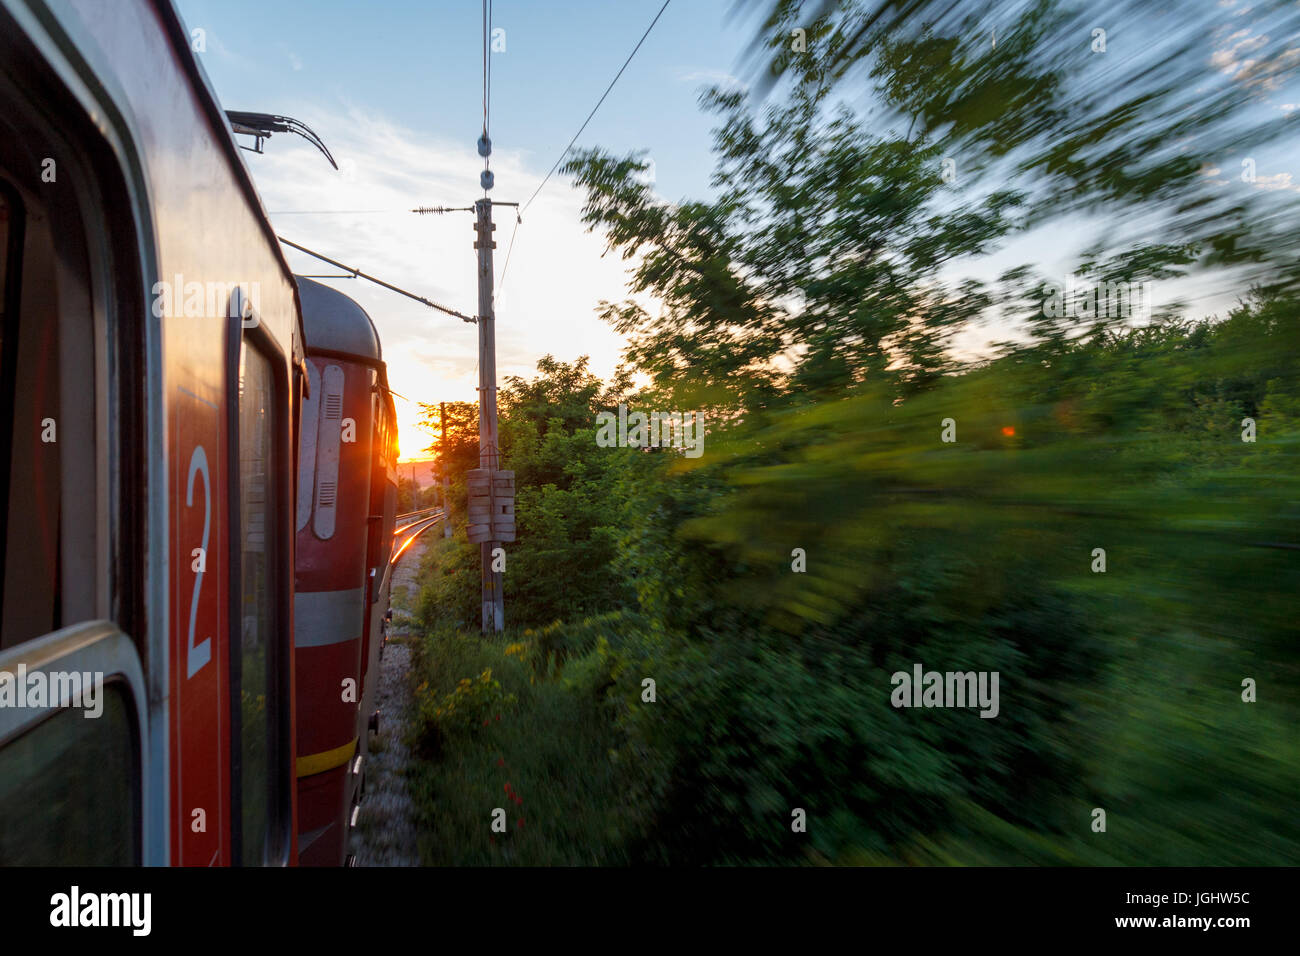 OUTSIDE OF AN OLD MOVING TRAIN - Stock Image